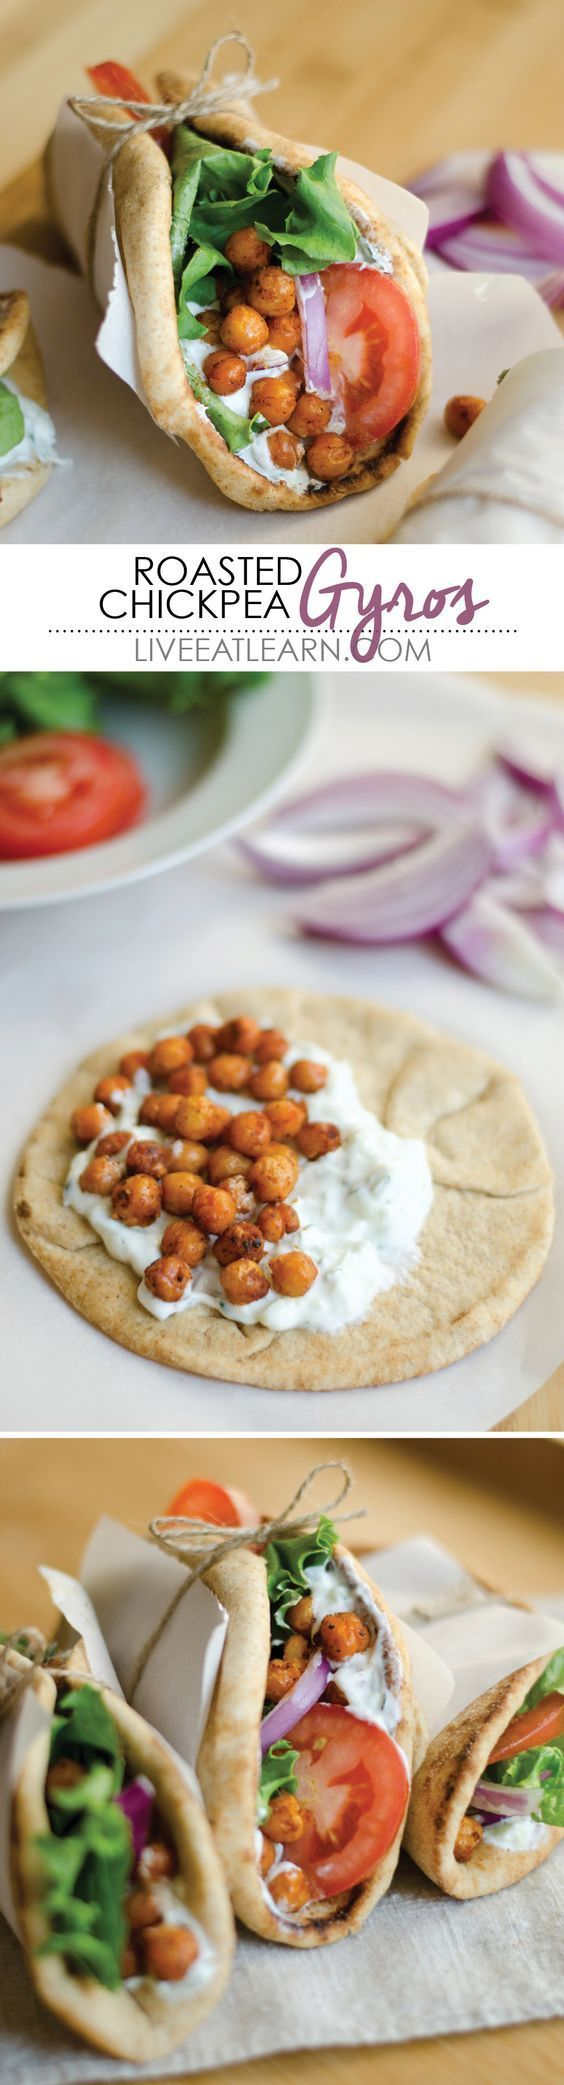 These Roasted Chickpea Gyros are a simple and delicious Mediterranean inspired wrap with refreshing tzatziki sauce. The perfect vegetarian lunch or dinner! via @liveeatlearn